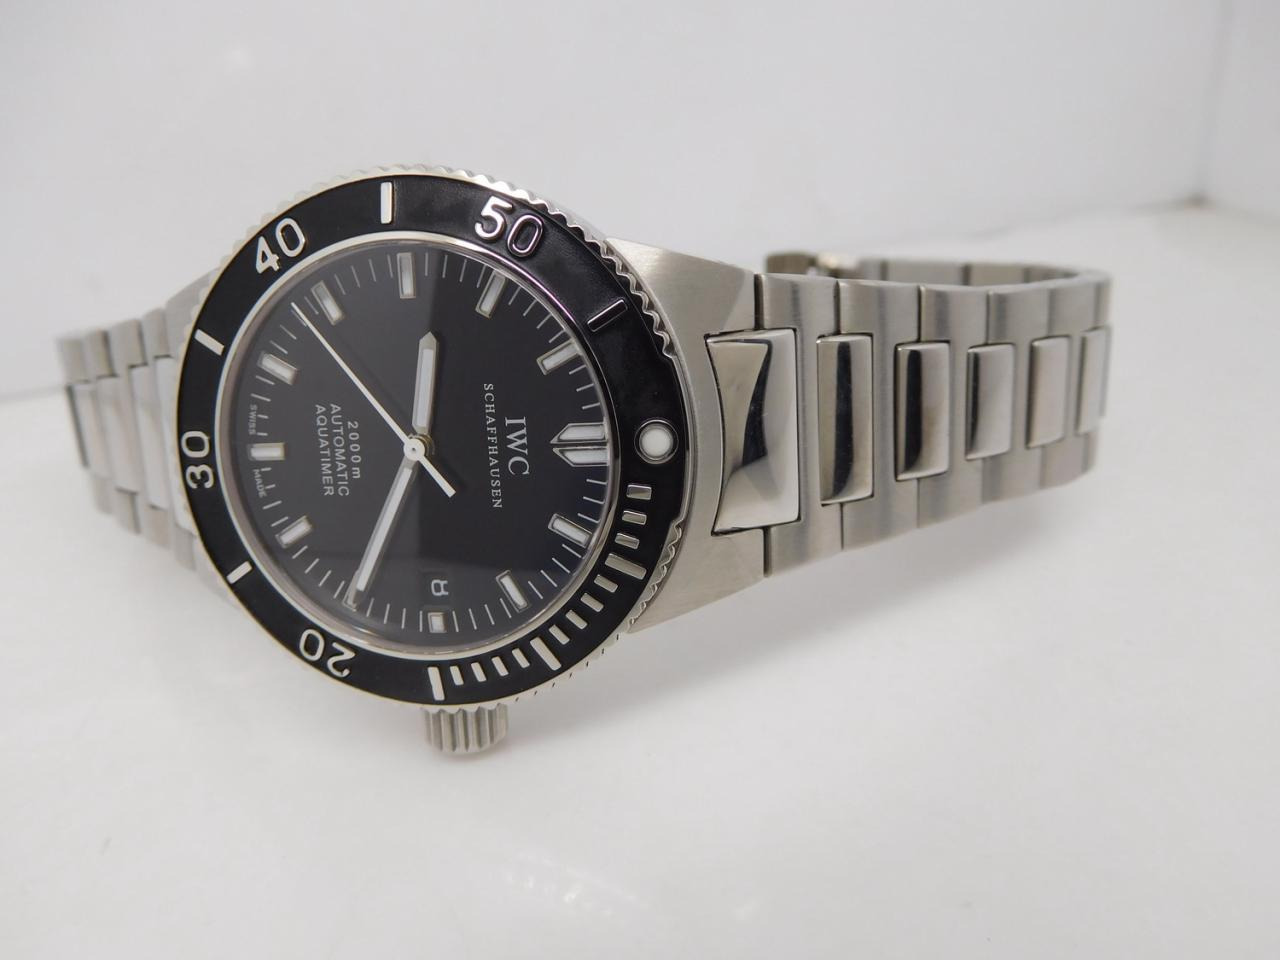 Replica IWC GST Aquatimer Steel Watch